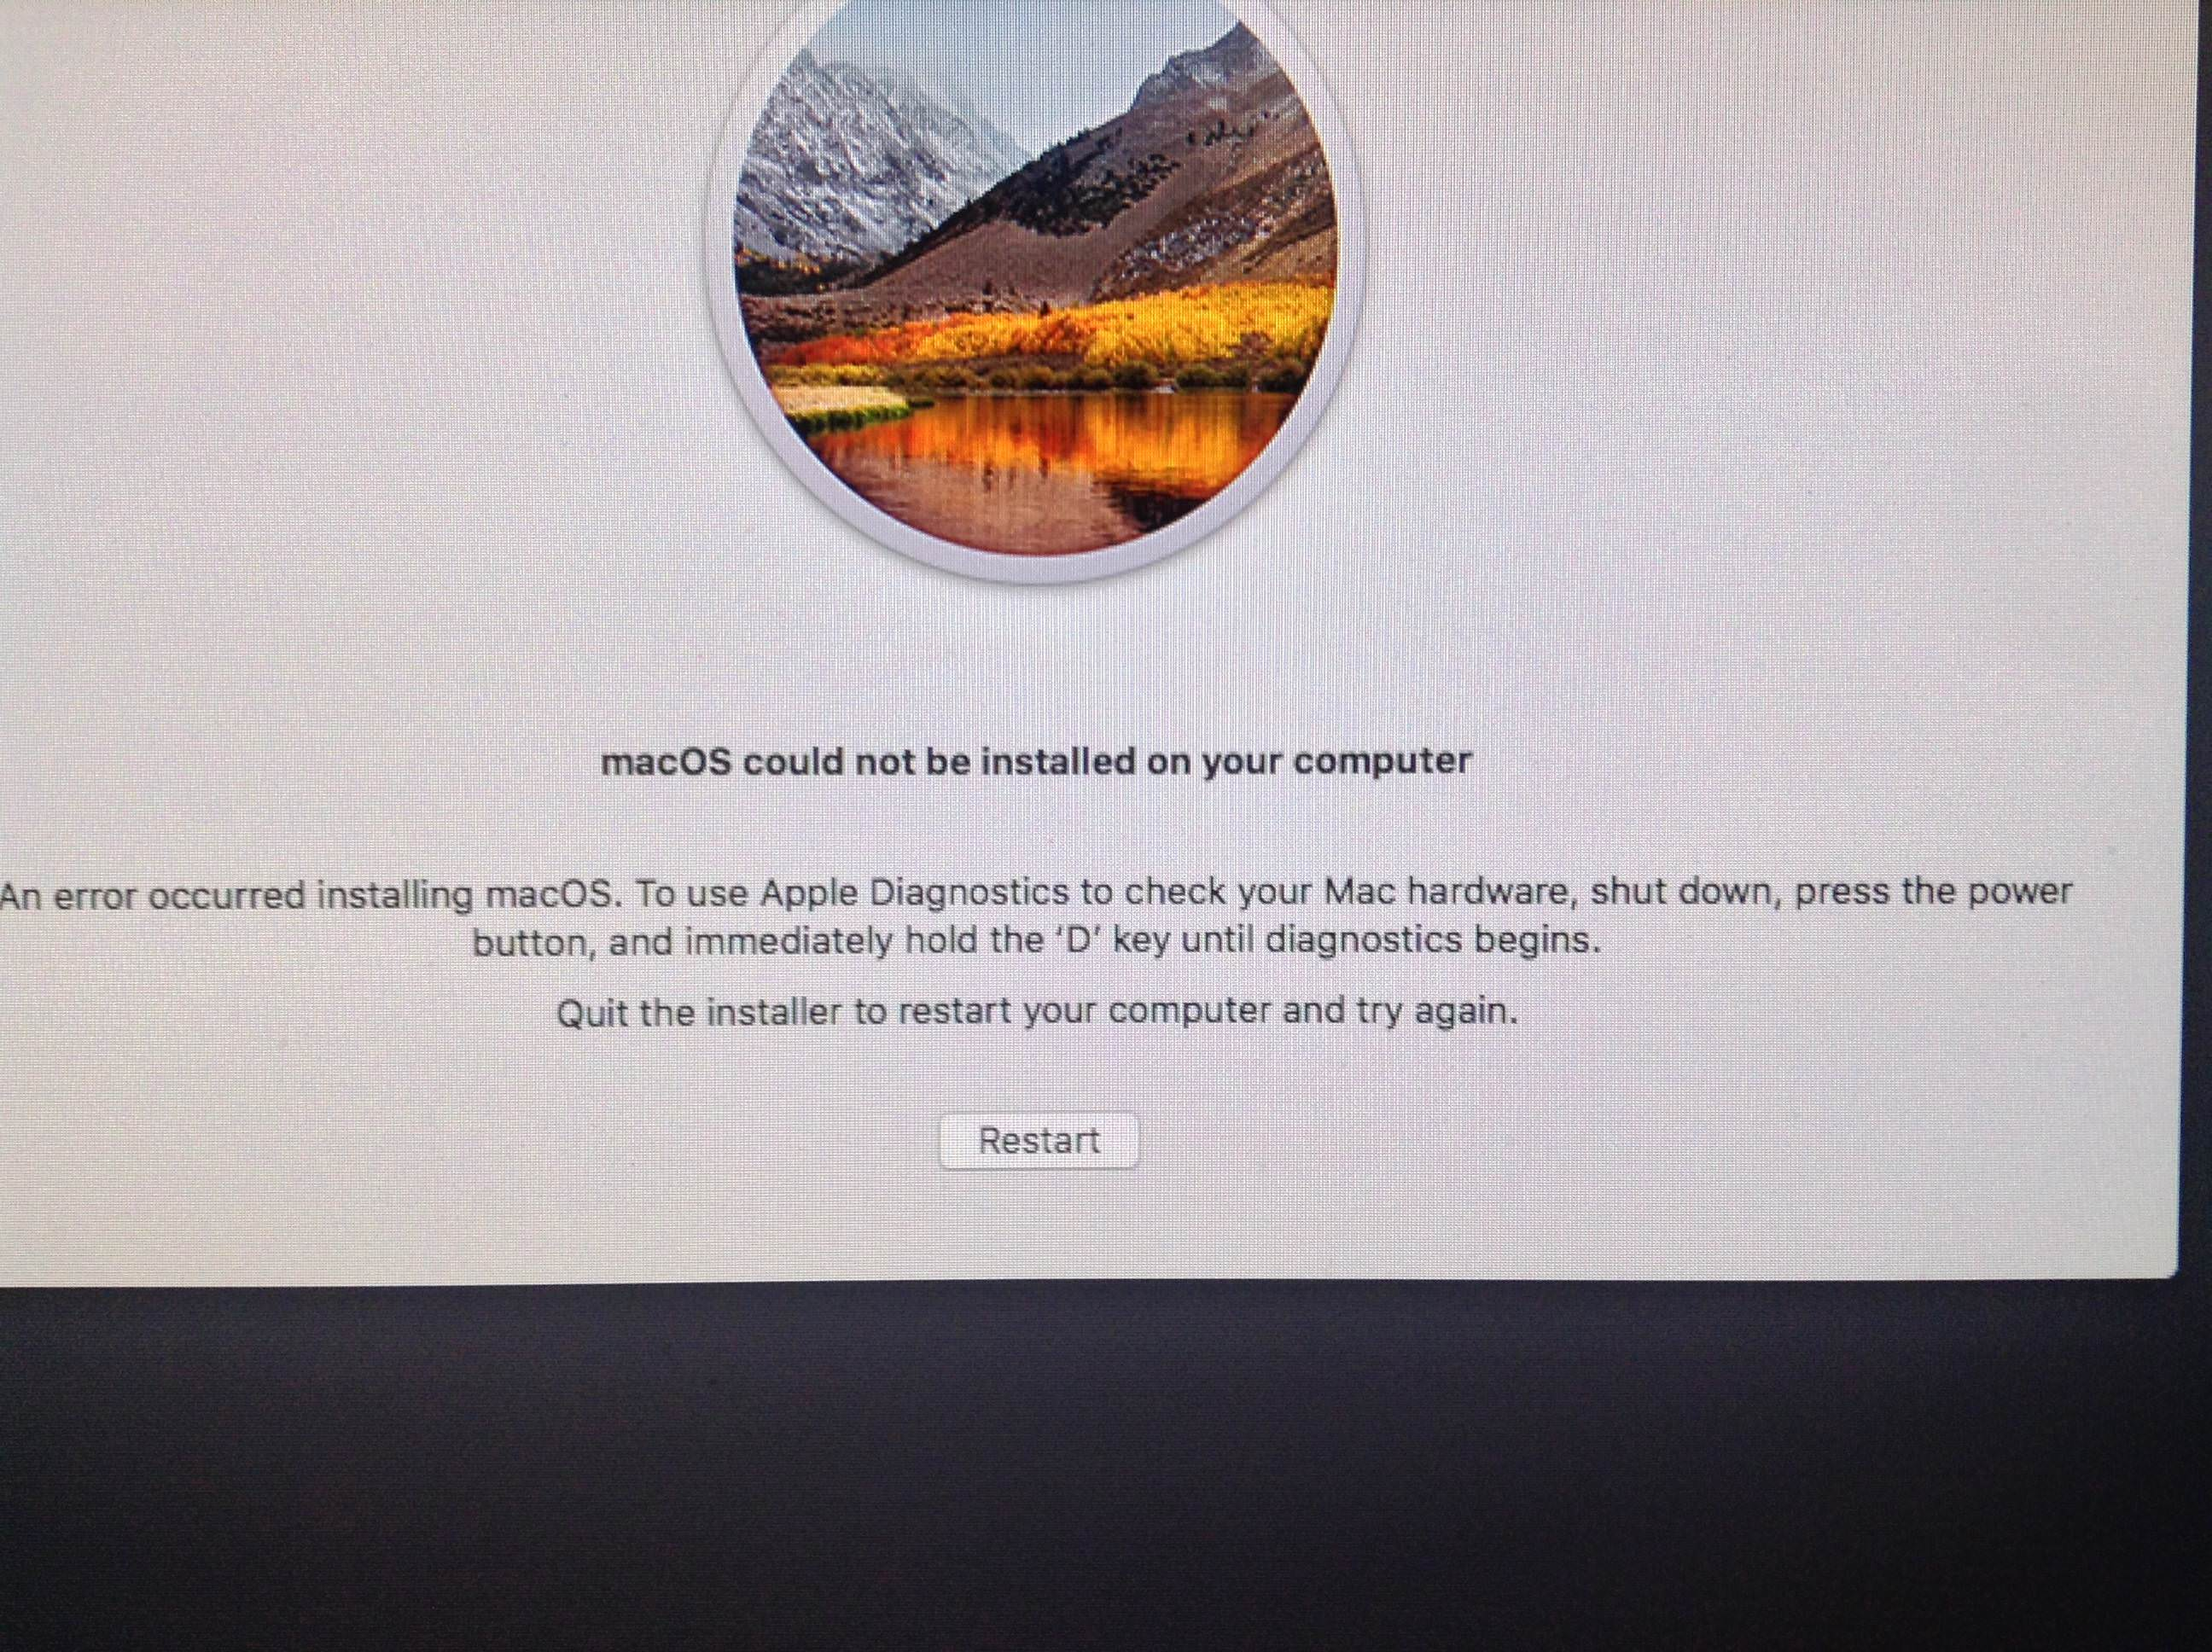 """Sửa lỗi """"macOS could not be installed on your computer"""" khi"""